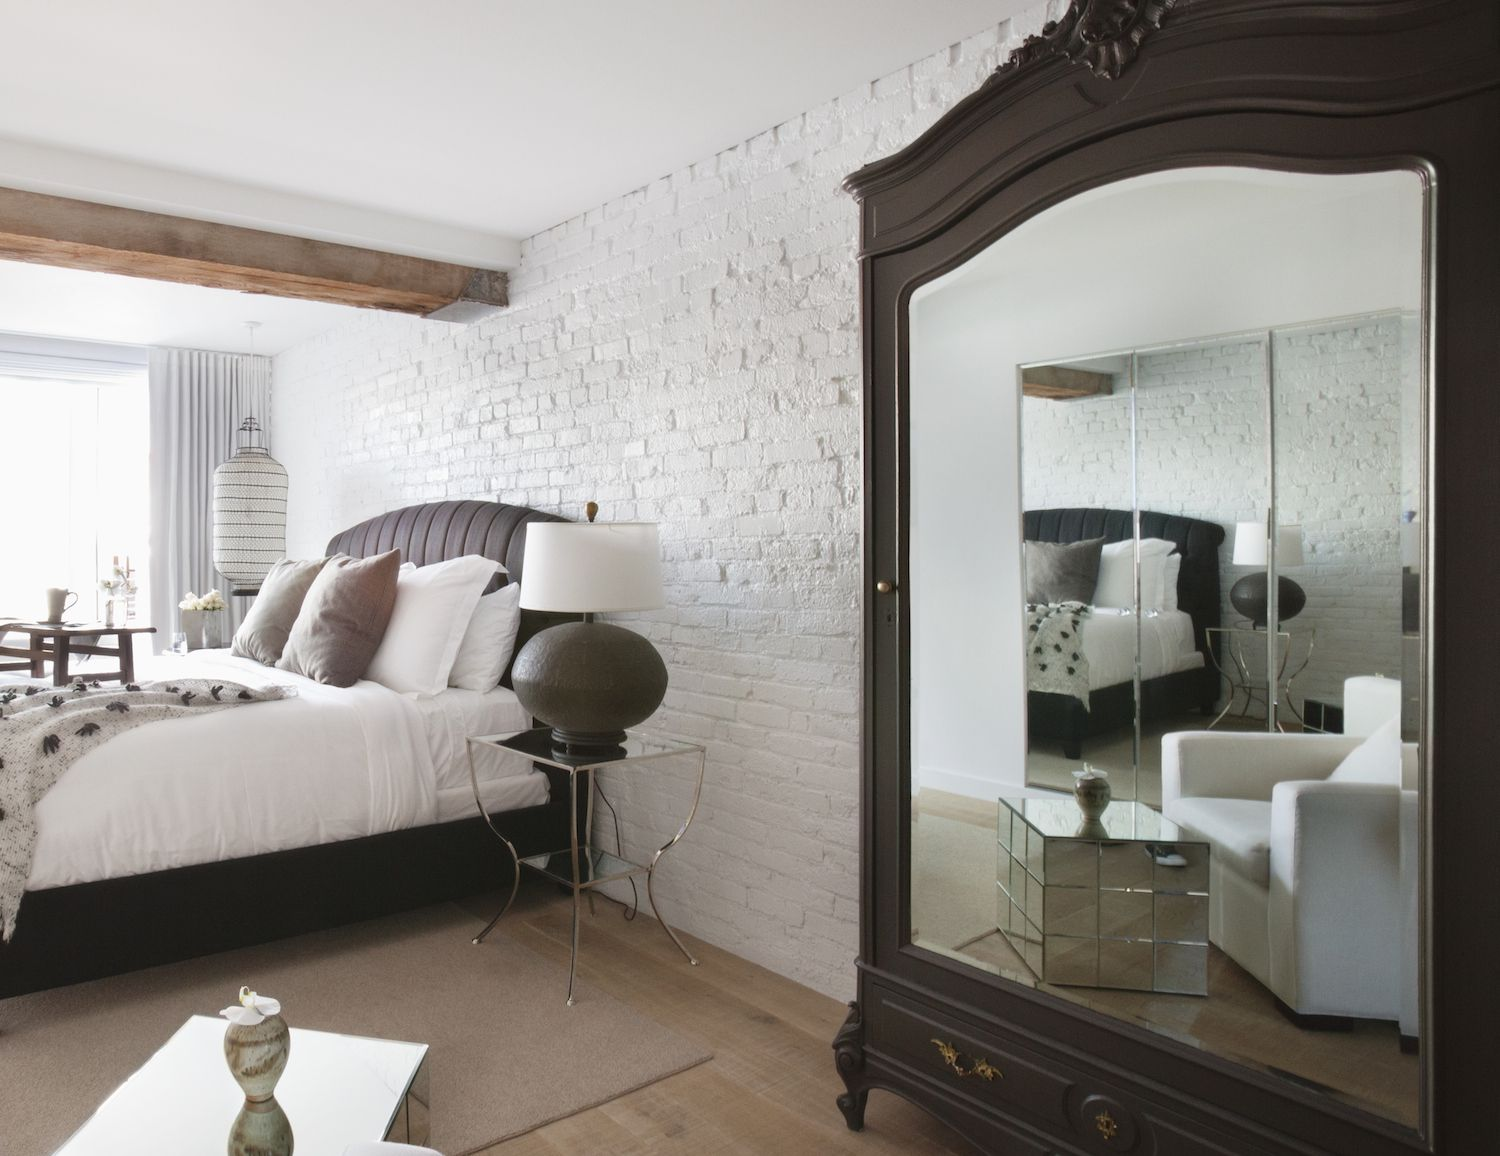 How to Avoid the Bad Bedroom Feng Shui of a Mirror Facing the Bed. 3 Things That Make a Good Feng Shui Bed